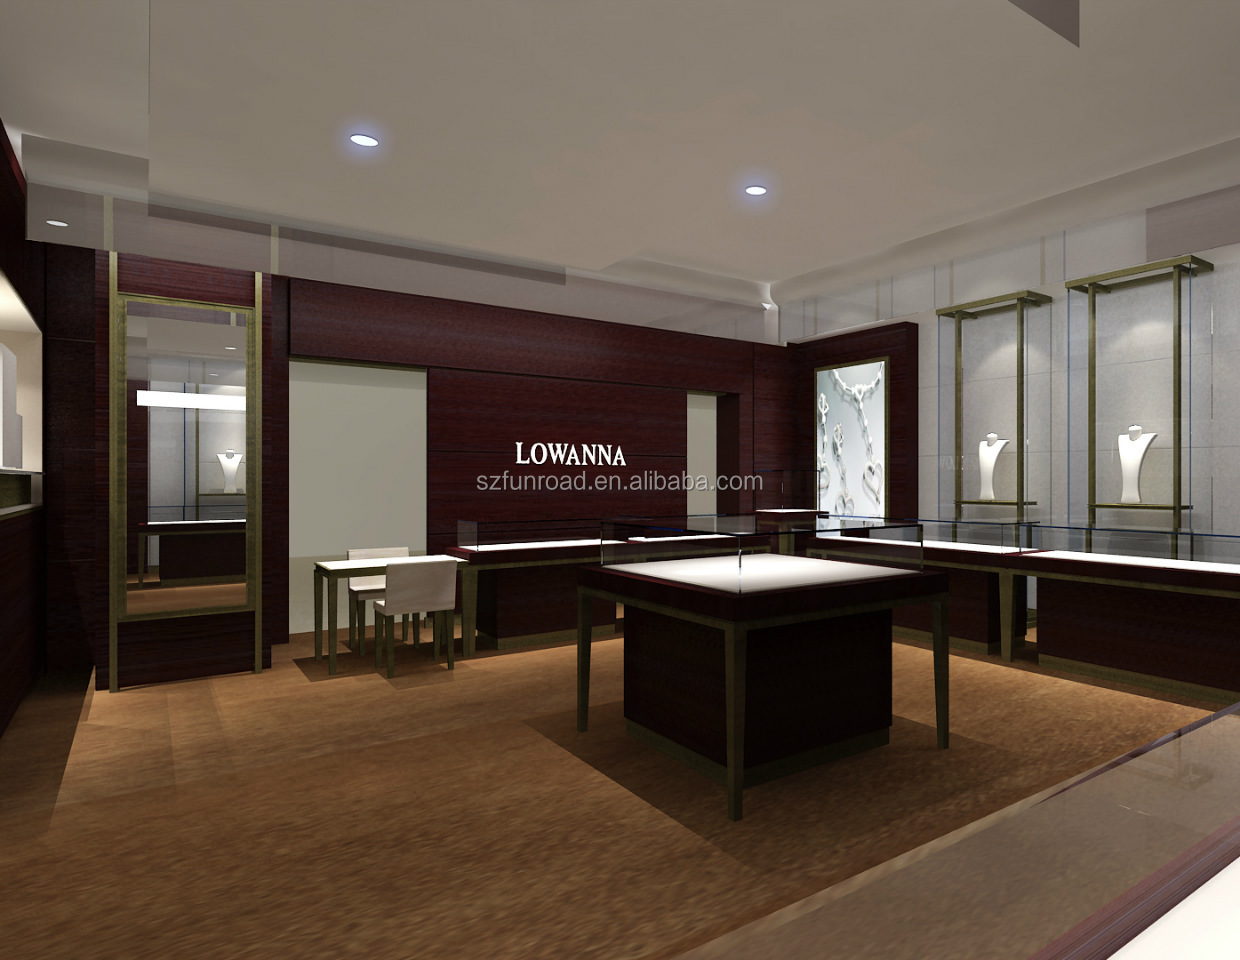 Wholesale jewelry display counter jewelry shop design idea for sale